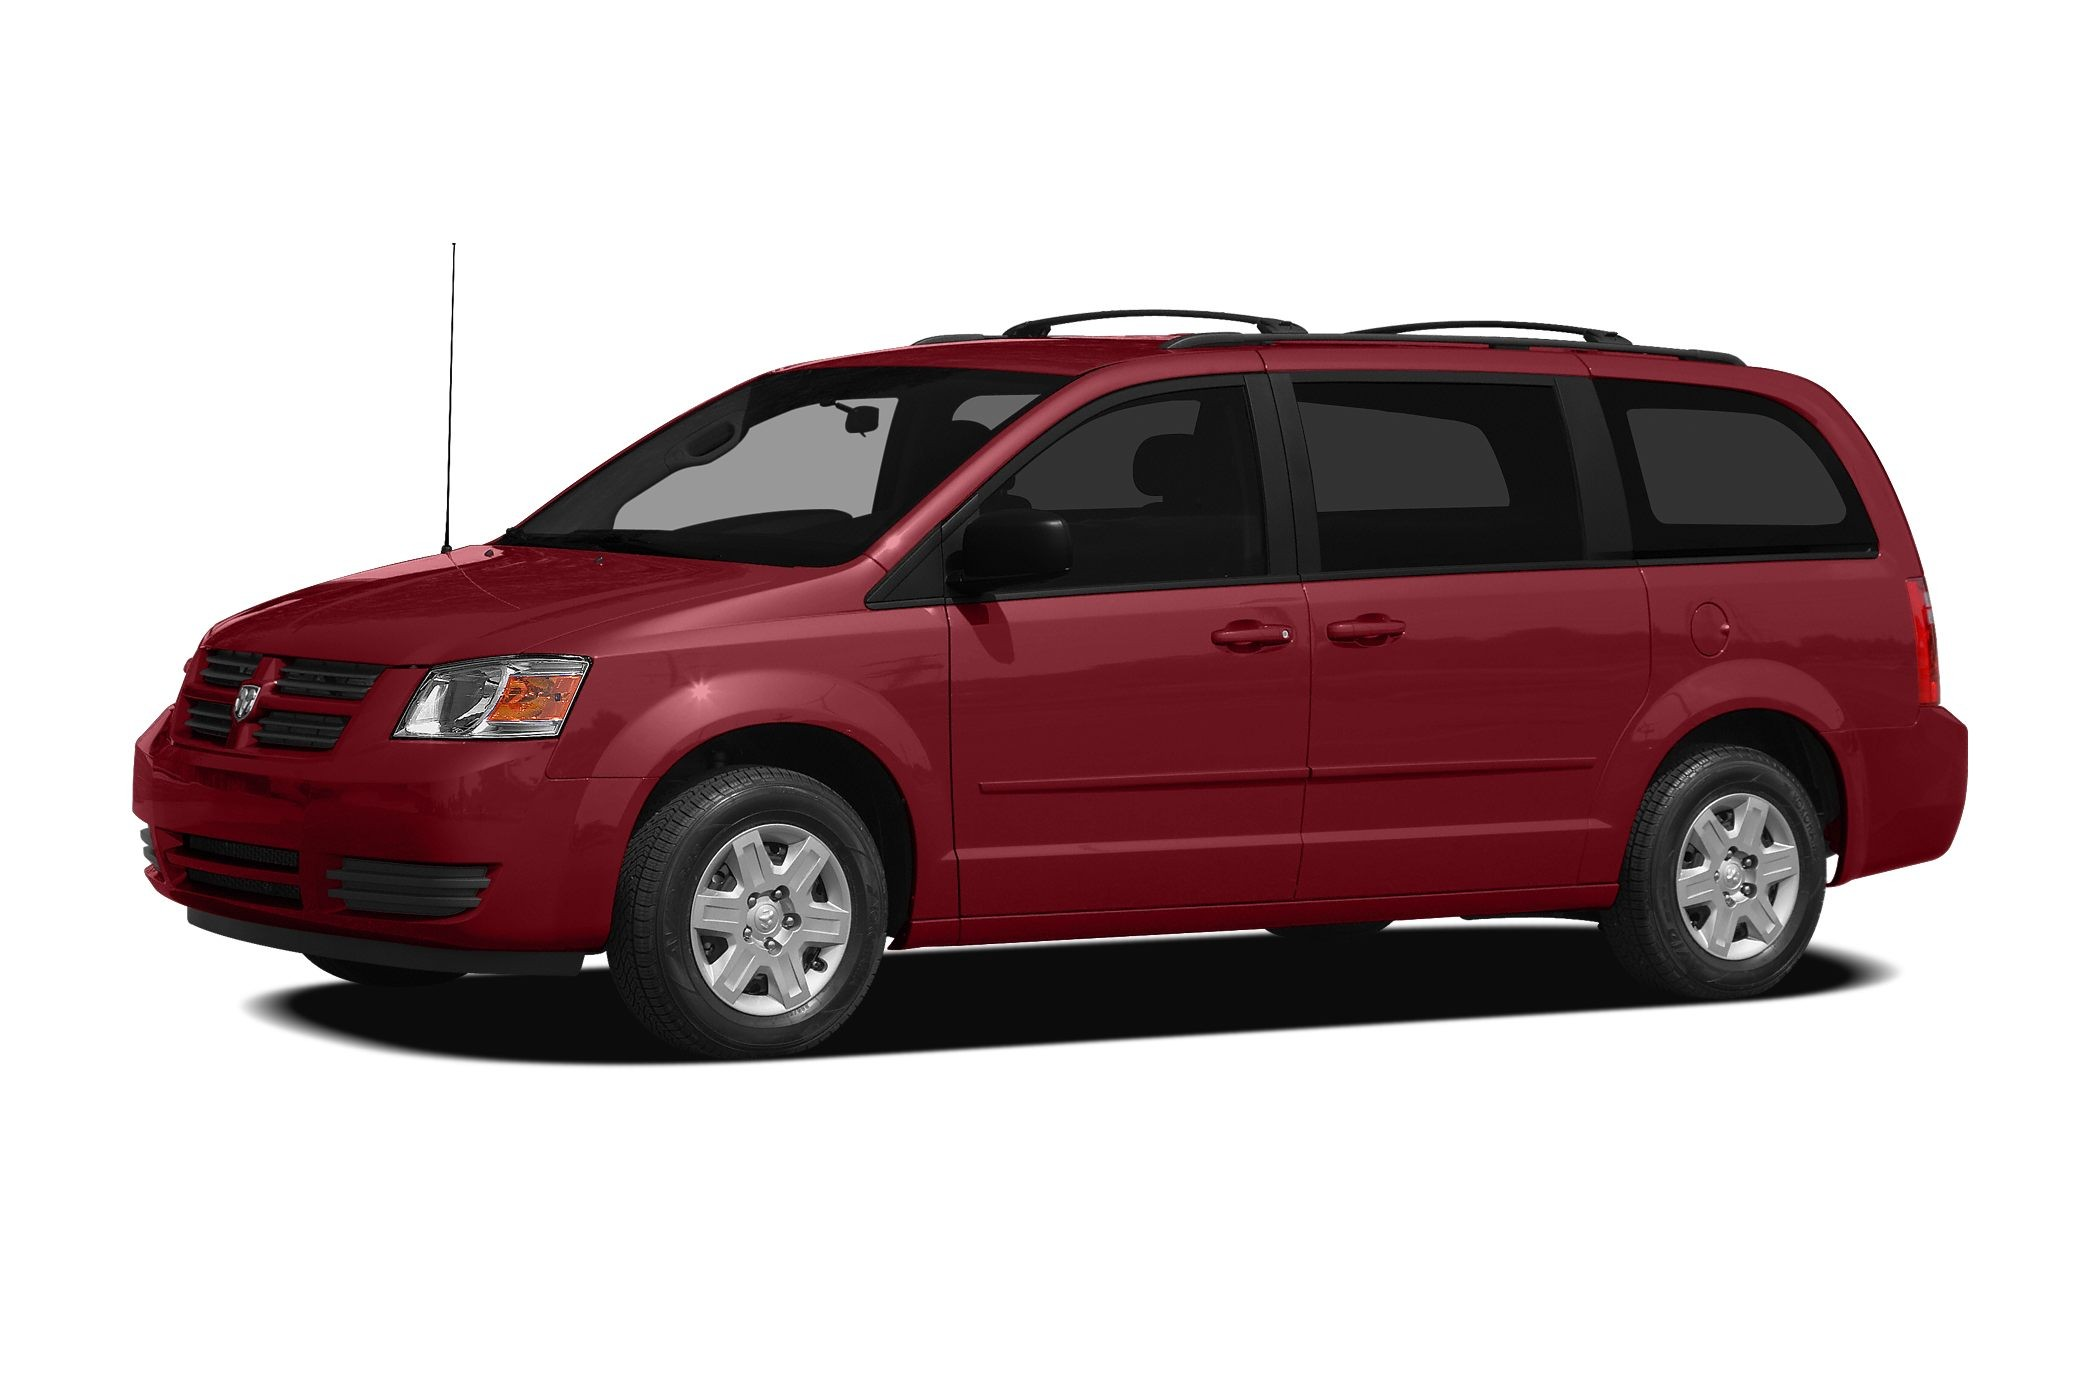 2010 Dodge Caravan Engine Diagram 2010 Dodge Grand Caravan Information Of  2010 Dodge Caravan Engine Diagram